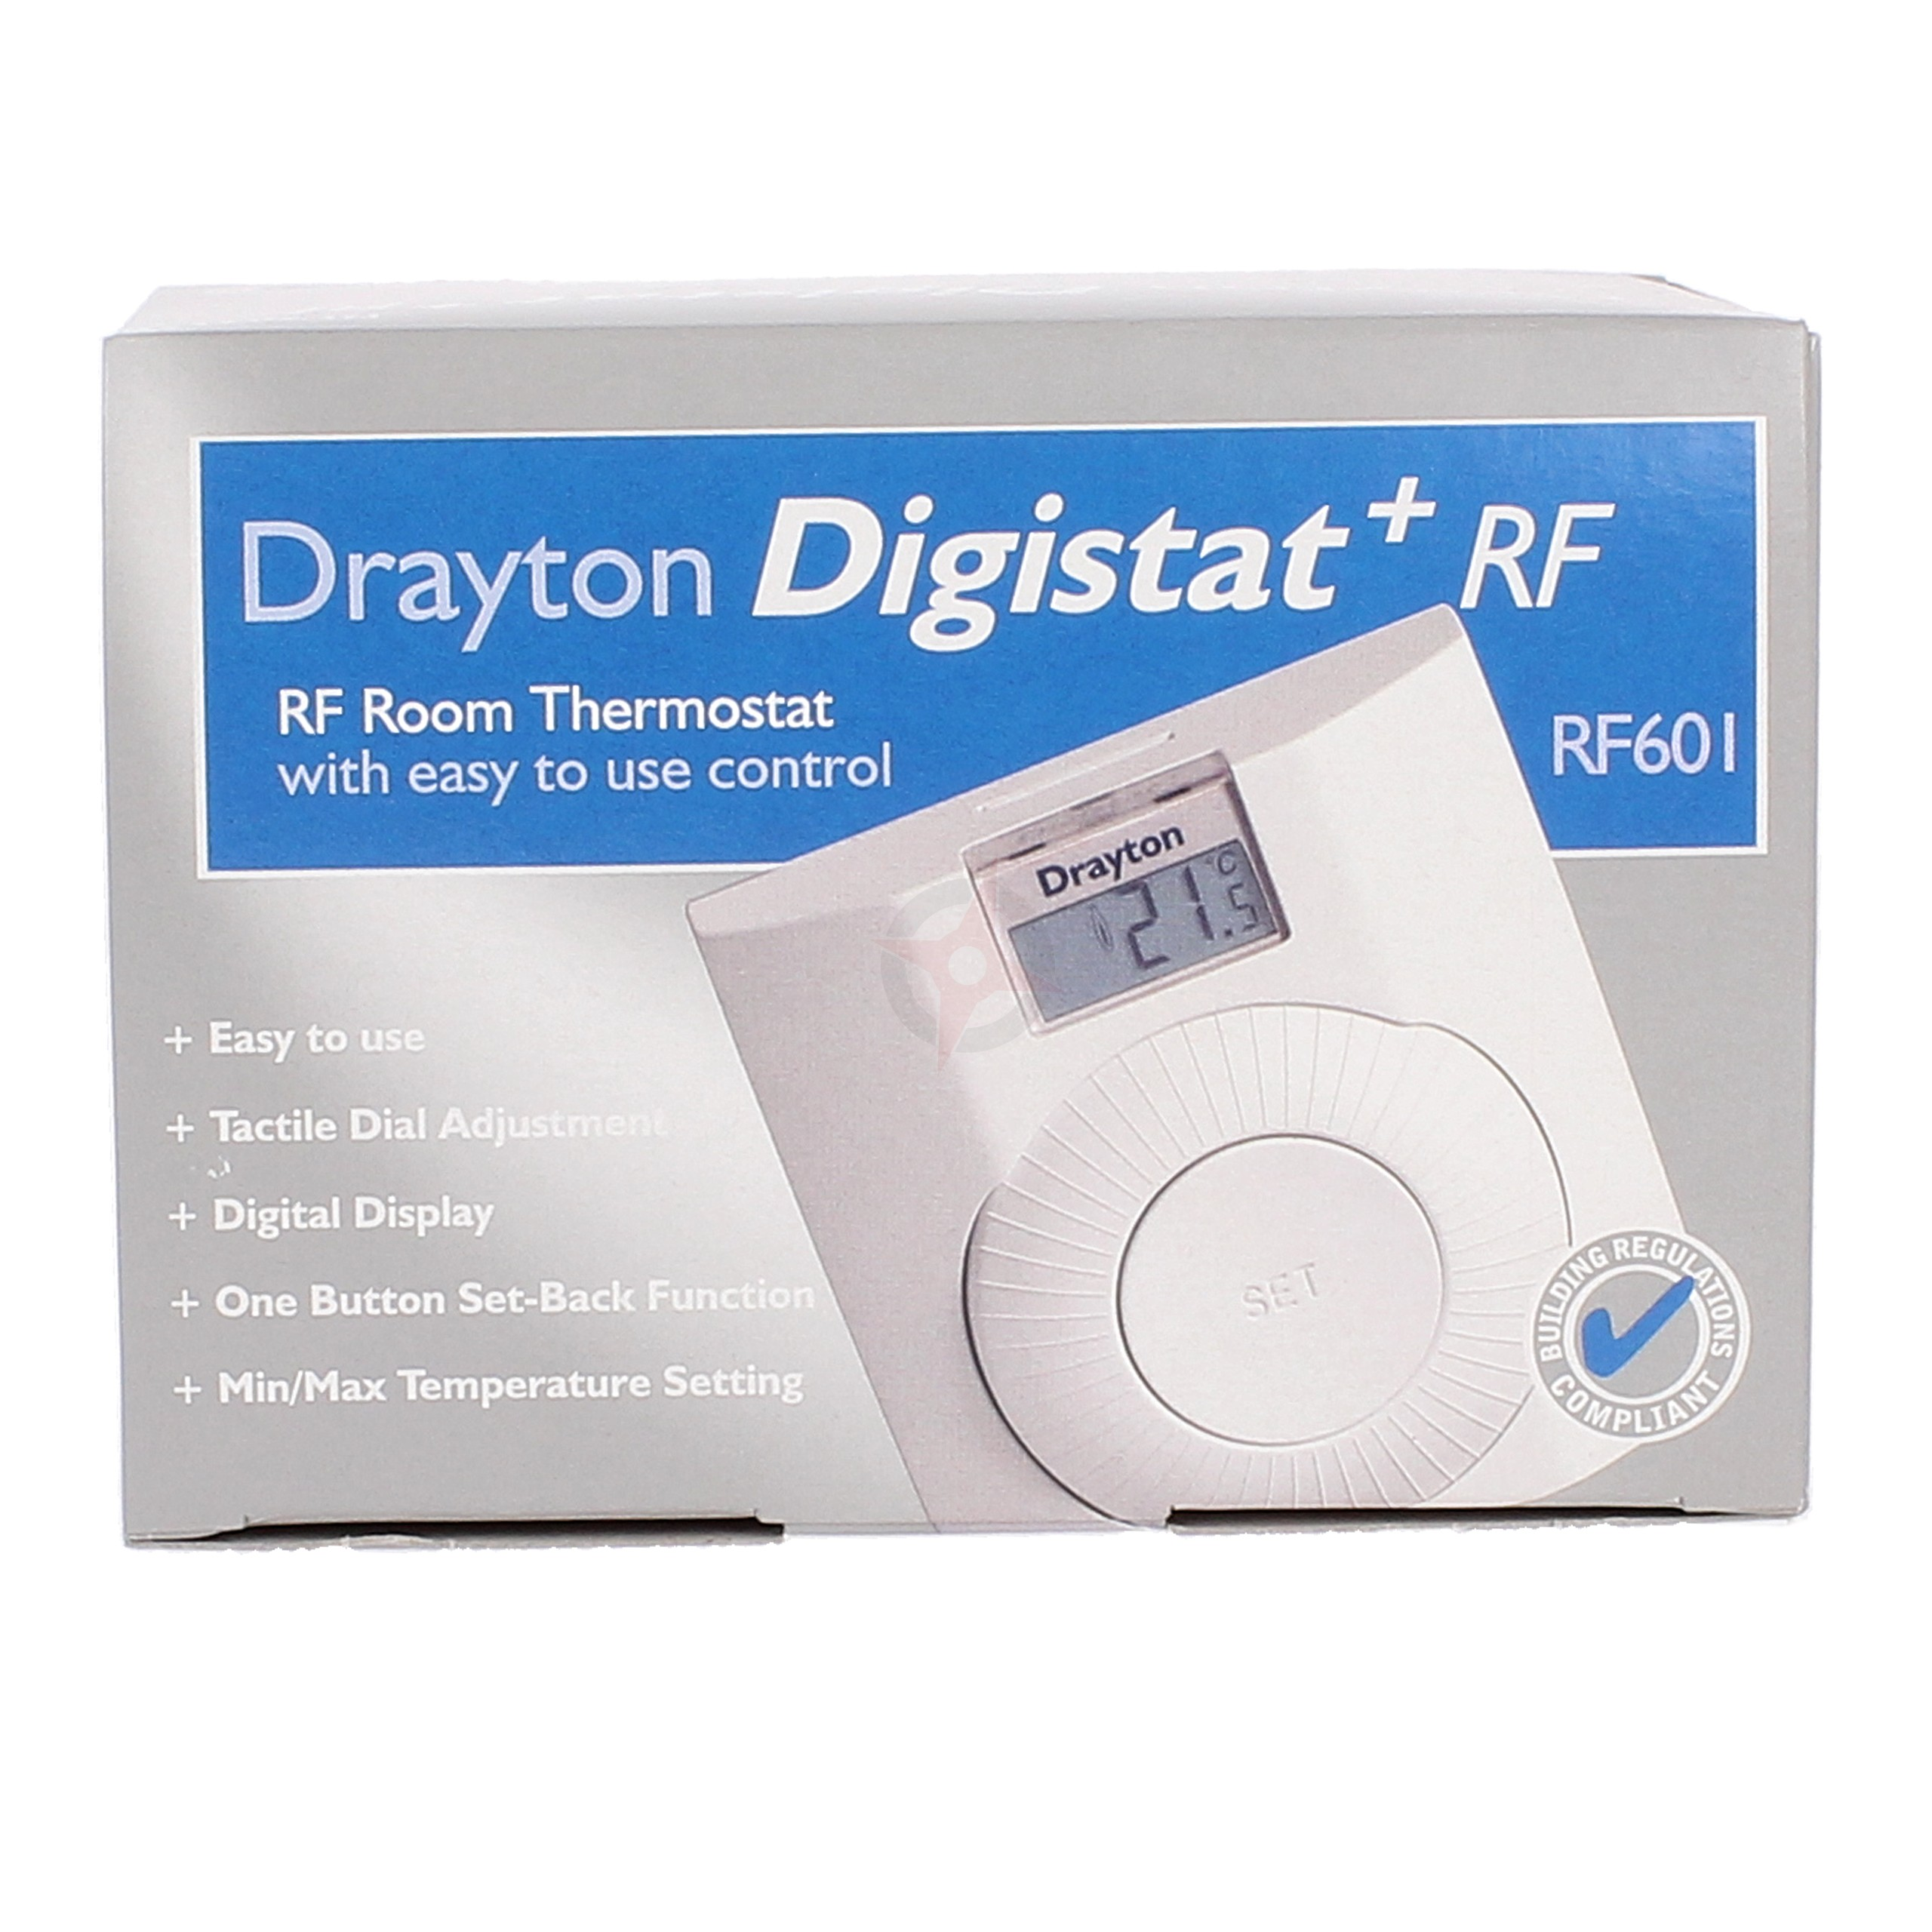 Drayton Radio Frequency Room Thermostat Digistat+ RF